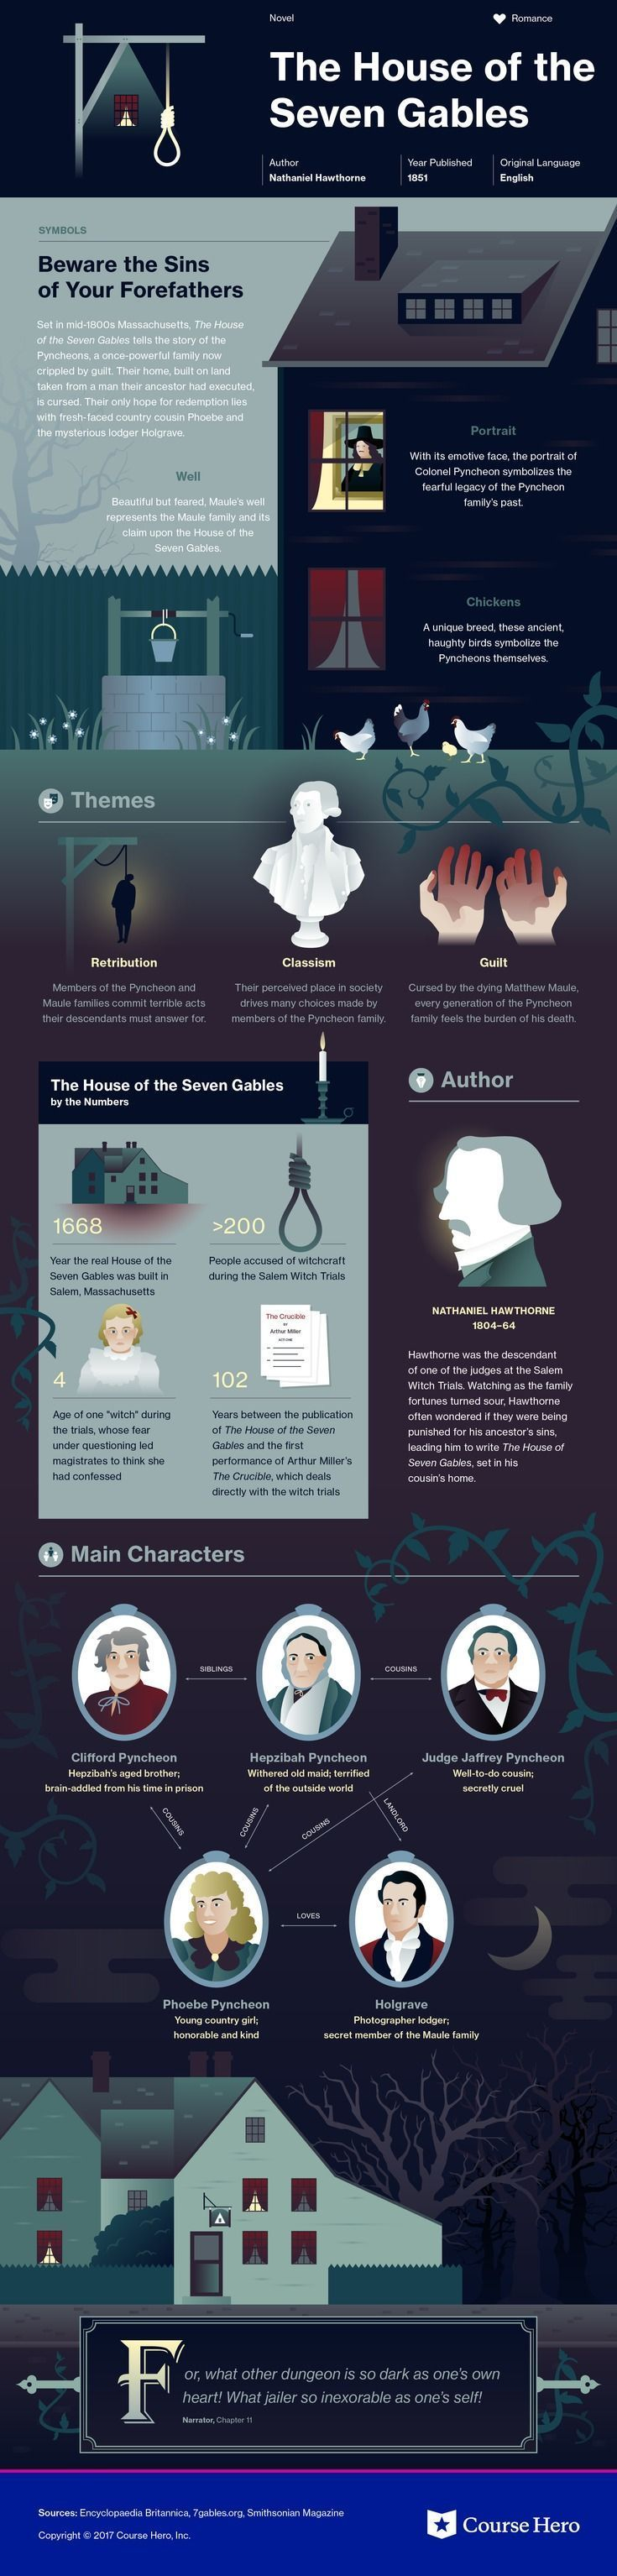 Nathaniel Hawthorne's The House of the Seven Gables Infographic | Course Hero: https://www.coursehero.com/lit/The-House-of-the-Seven-Gables/